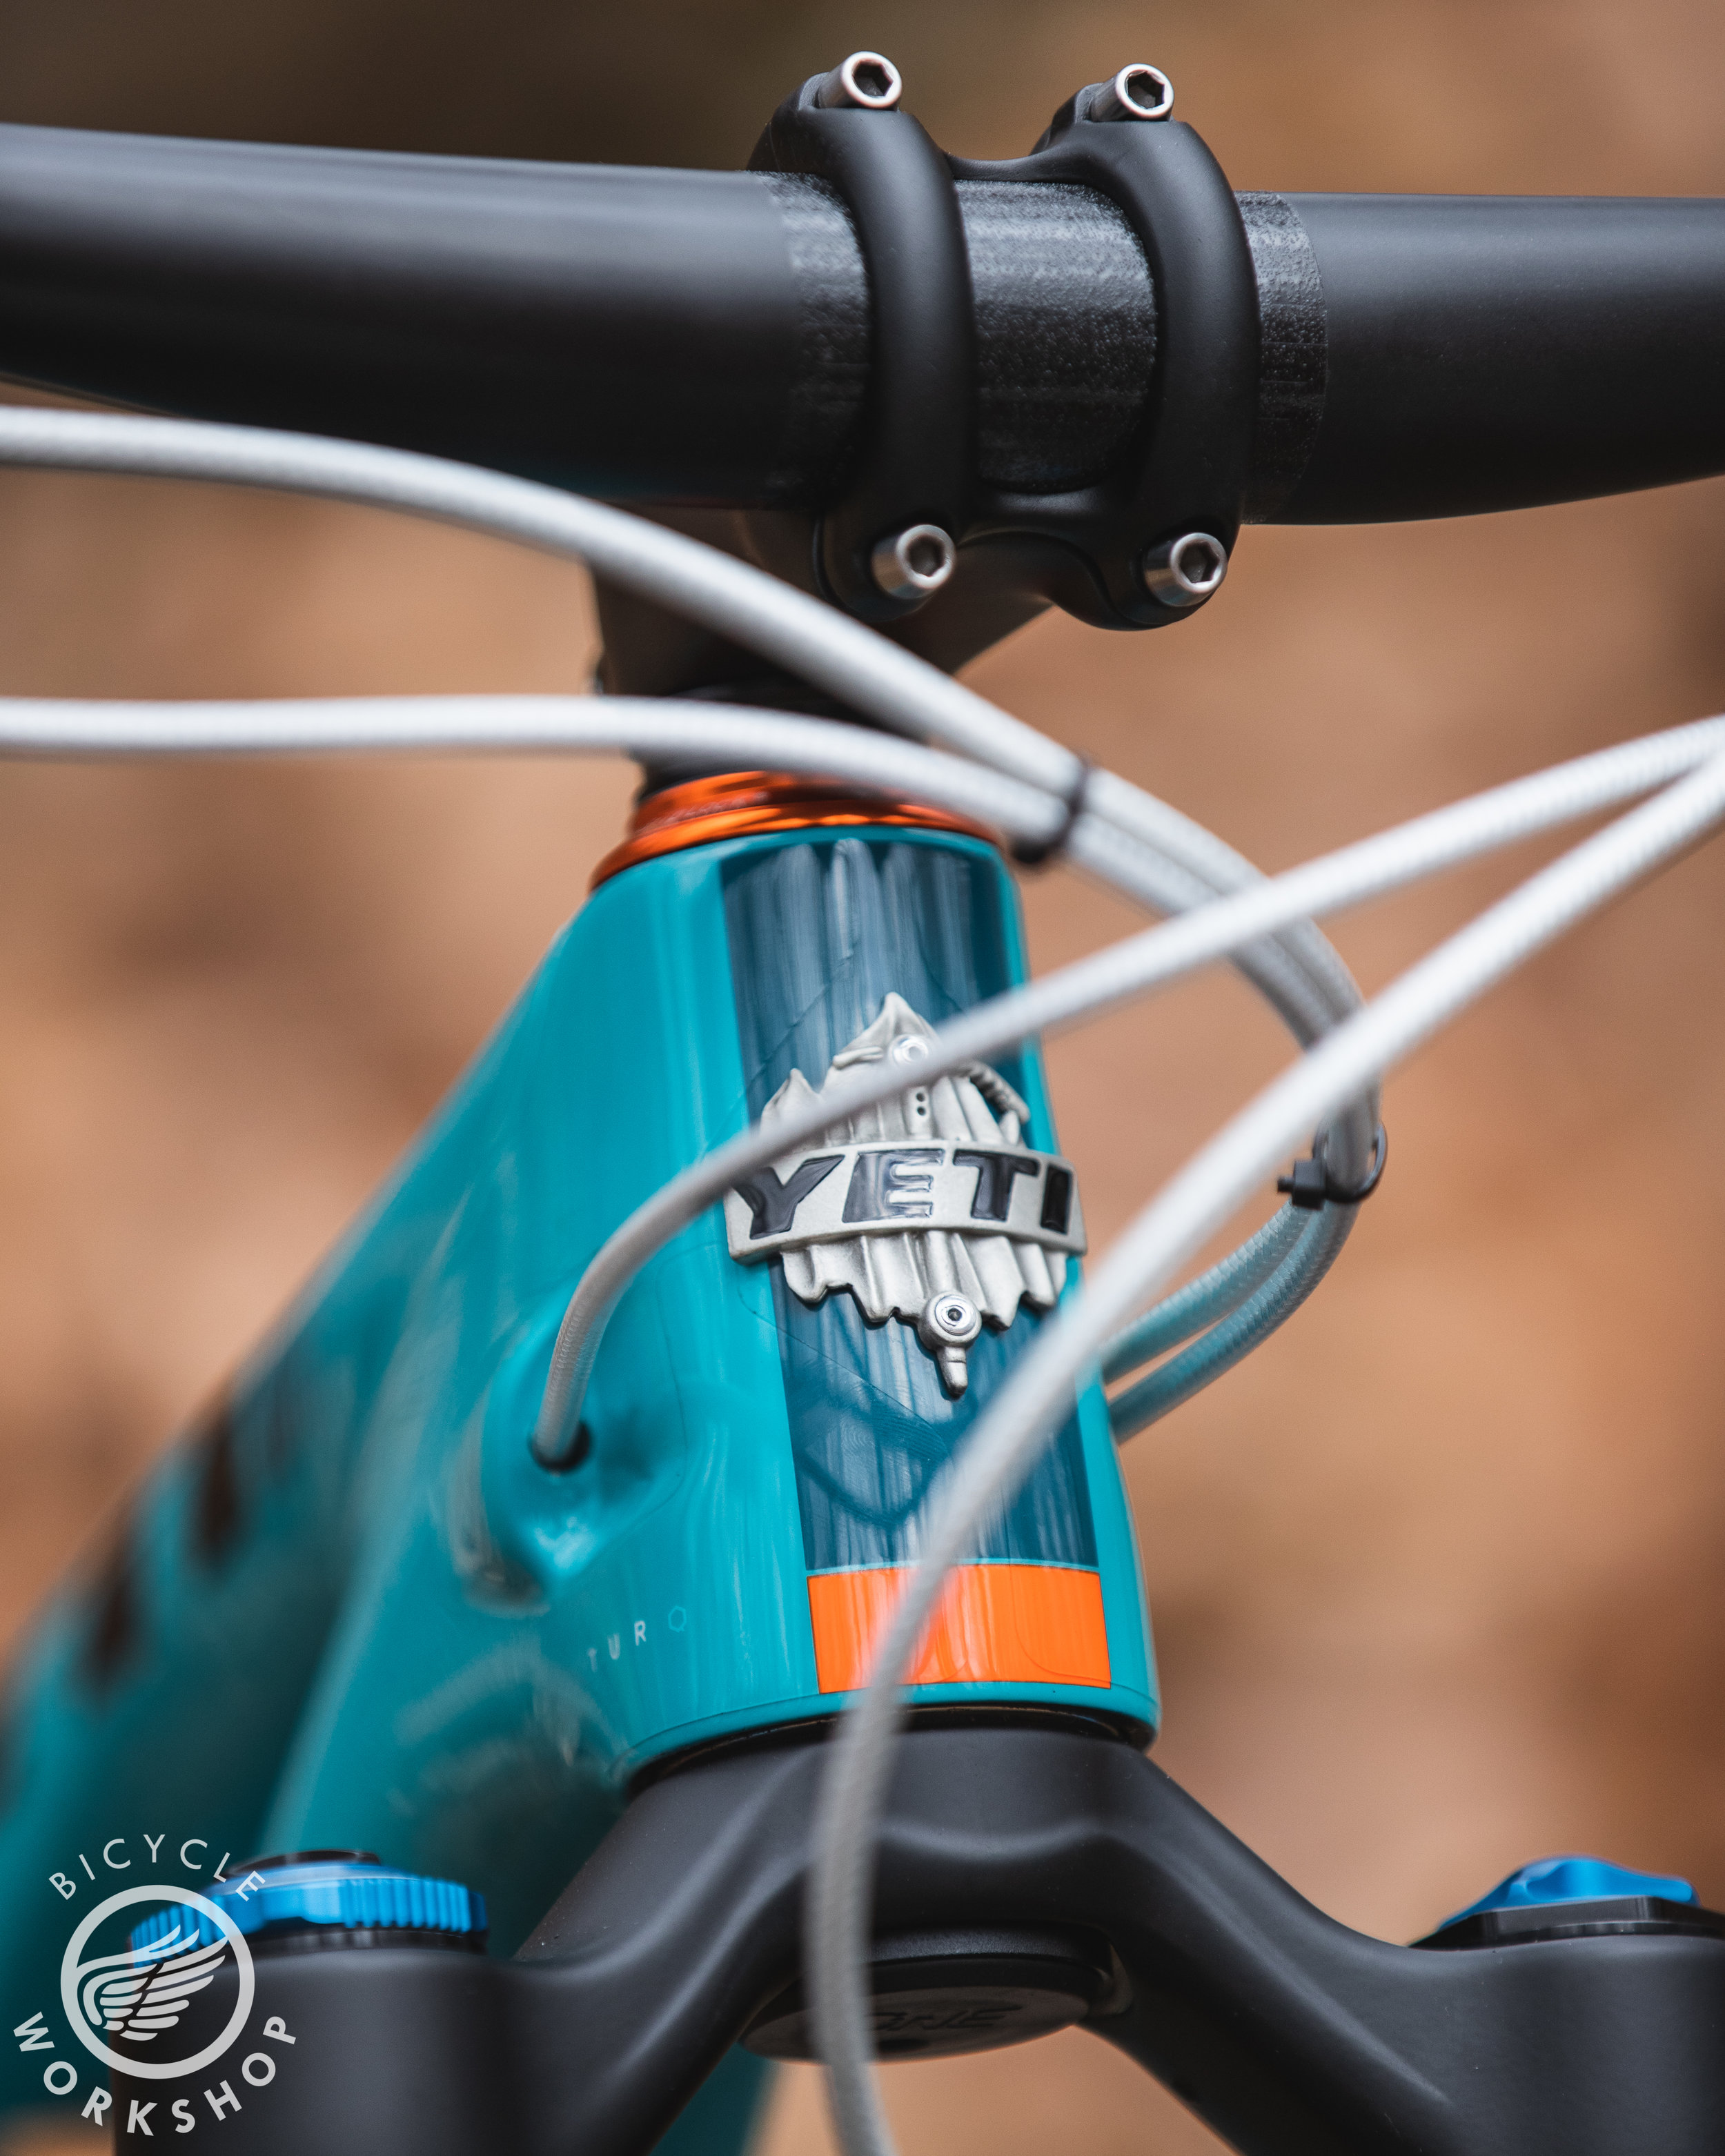 Tim - Yeti SB130 - Full Sized-24.jpg